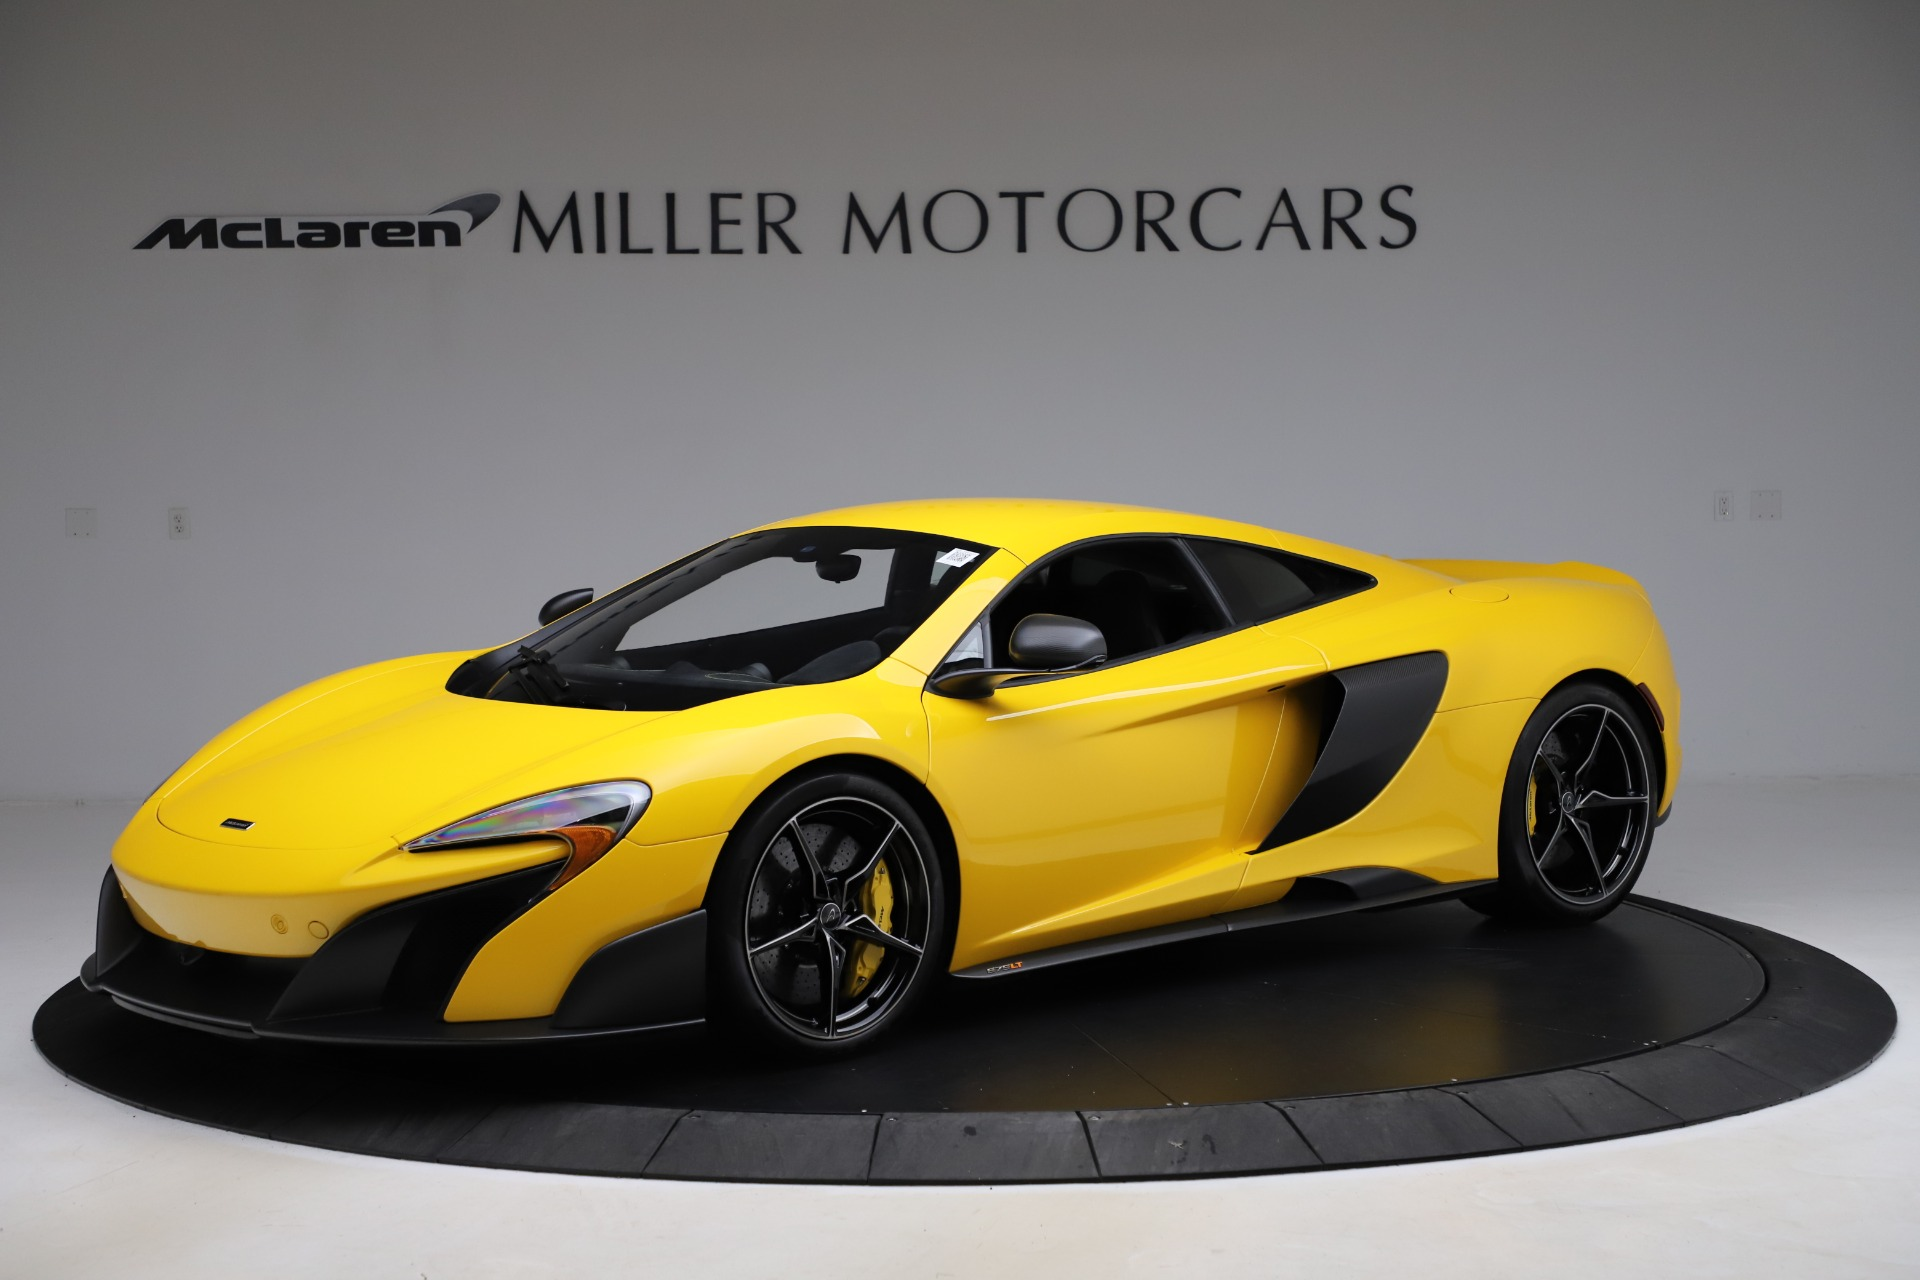 Used 2016 McLaren 675LT Coupe for sale $225,900 at Aston Martin of Greenwich in Greenwich CT 06830 1